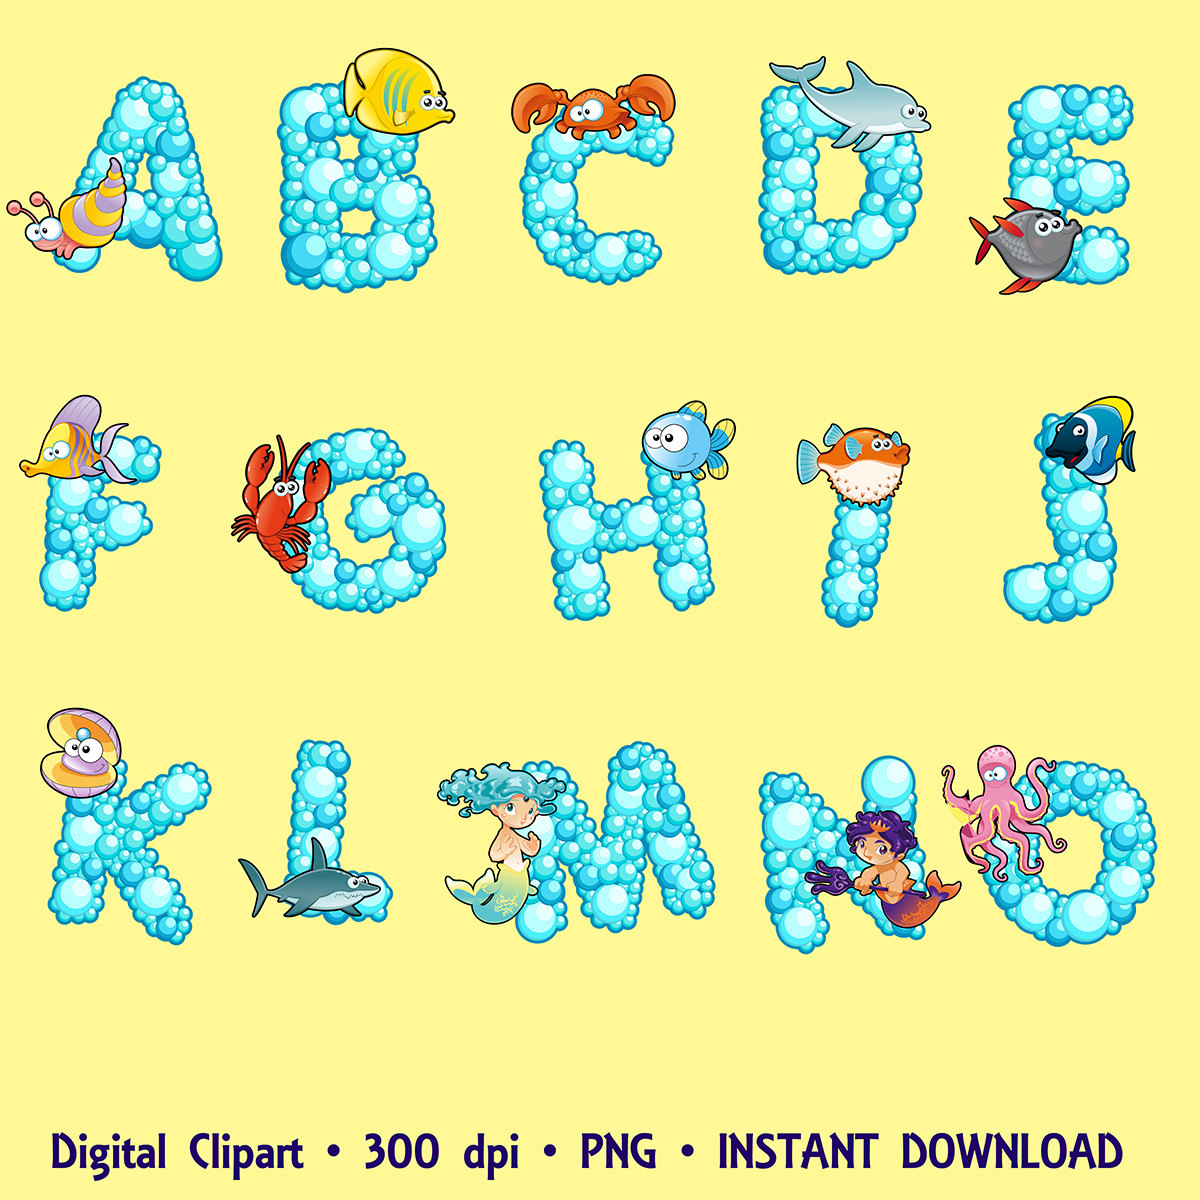 Alphabet Digital Clipart Fonts ABC Images Bubbles Sea Animals.